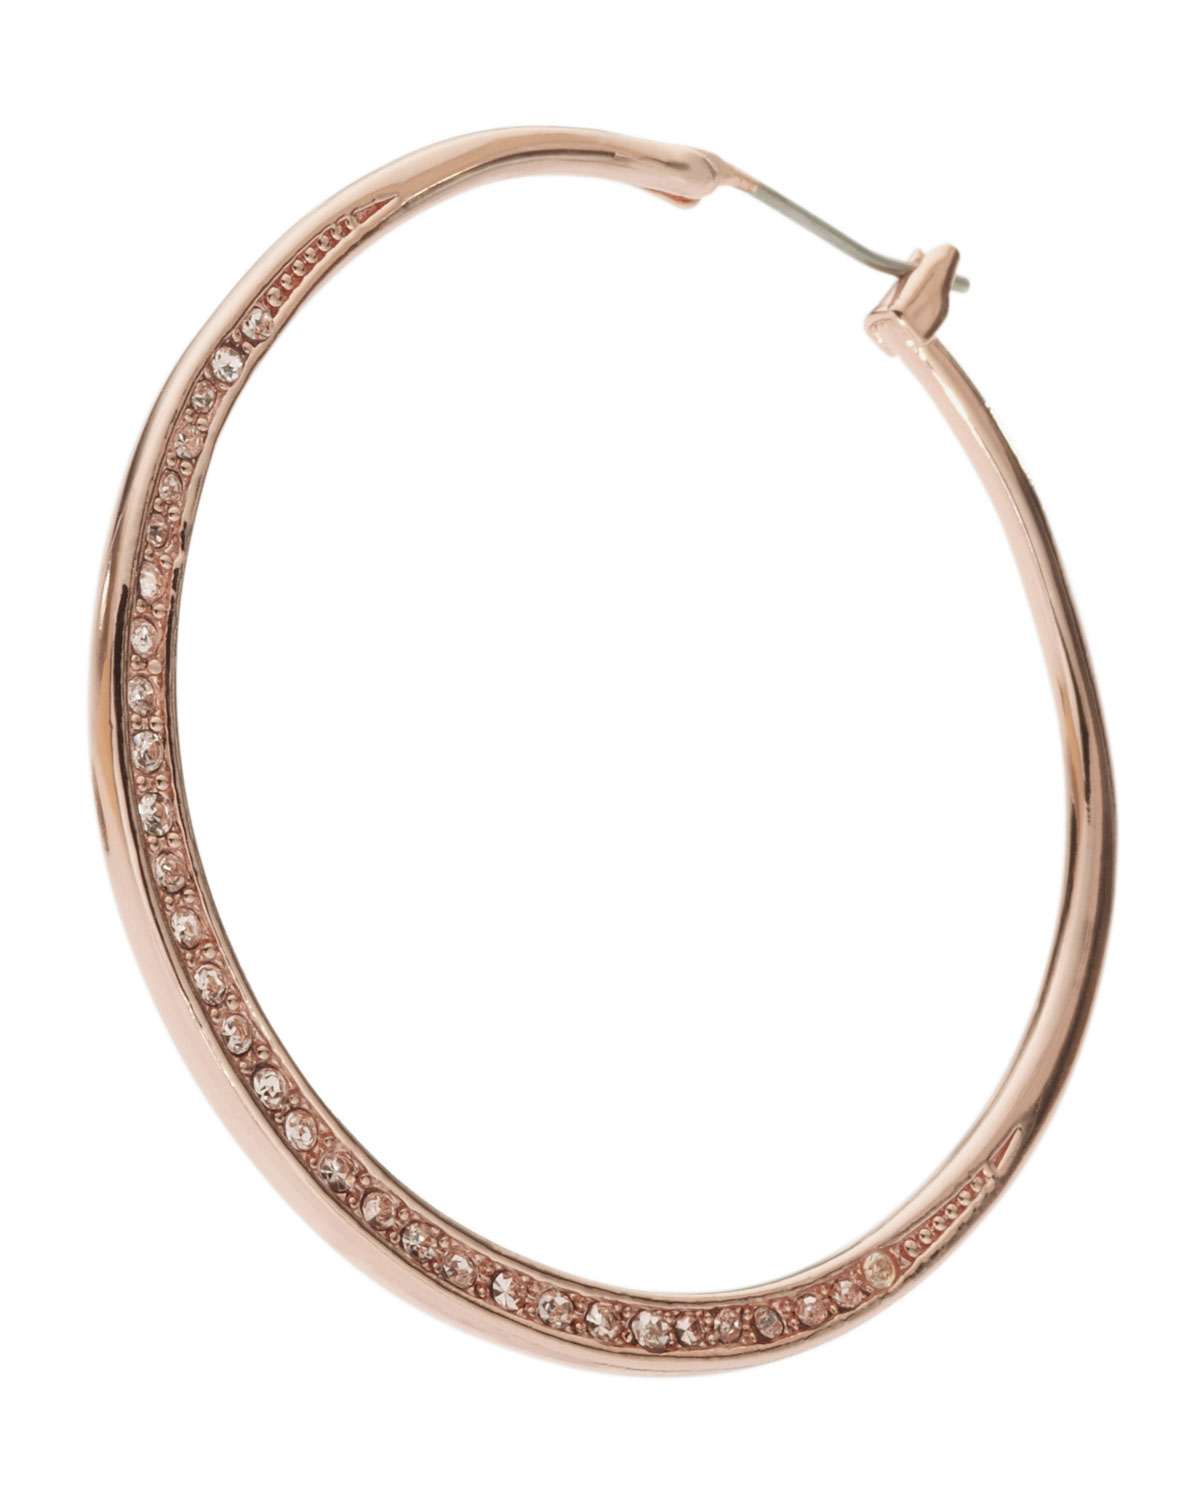 Michael Kors Rose Gold Pave Hoop Earrings in Pink (null